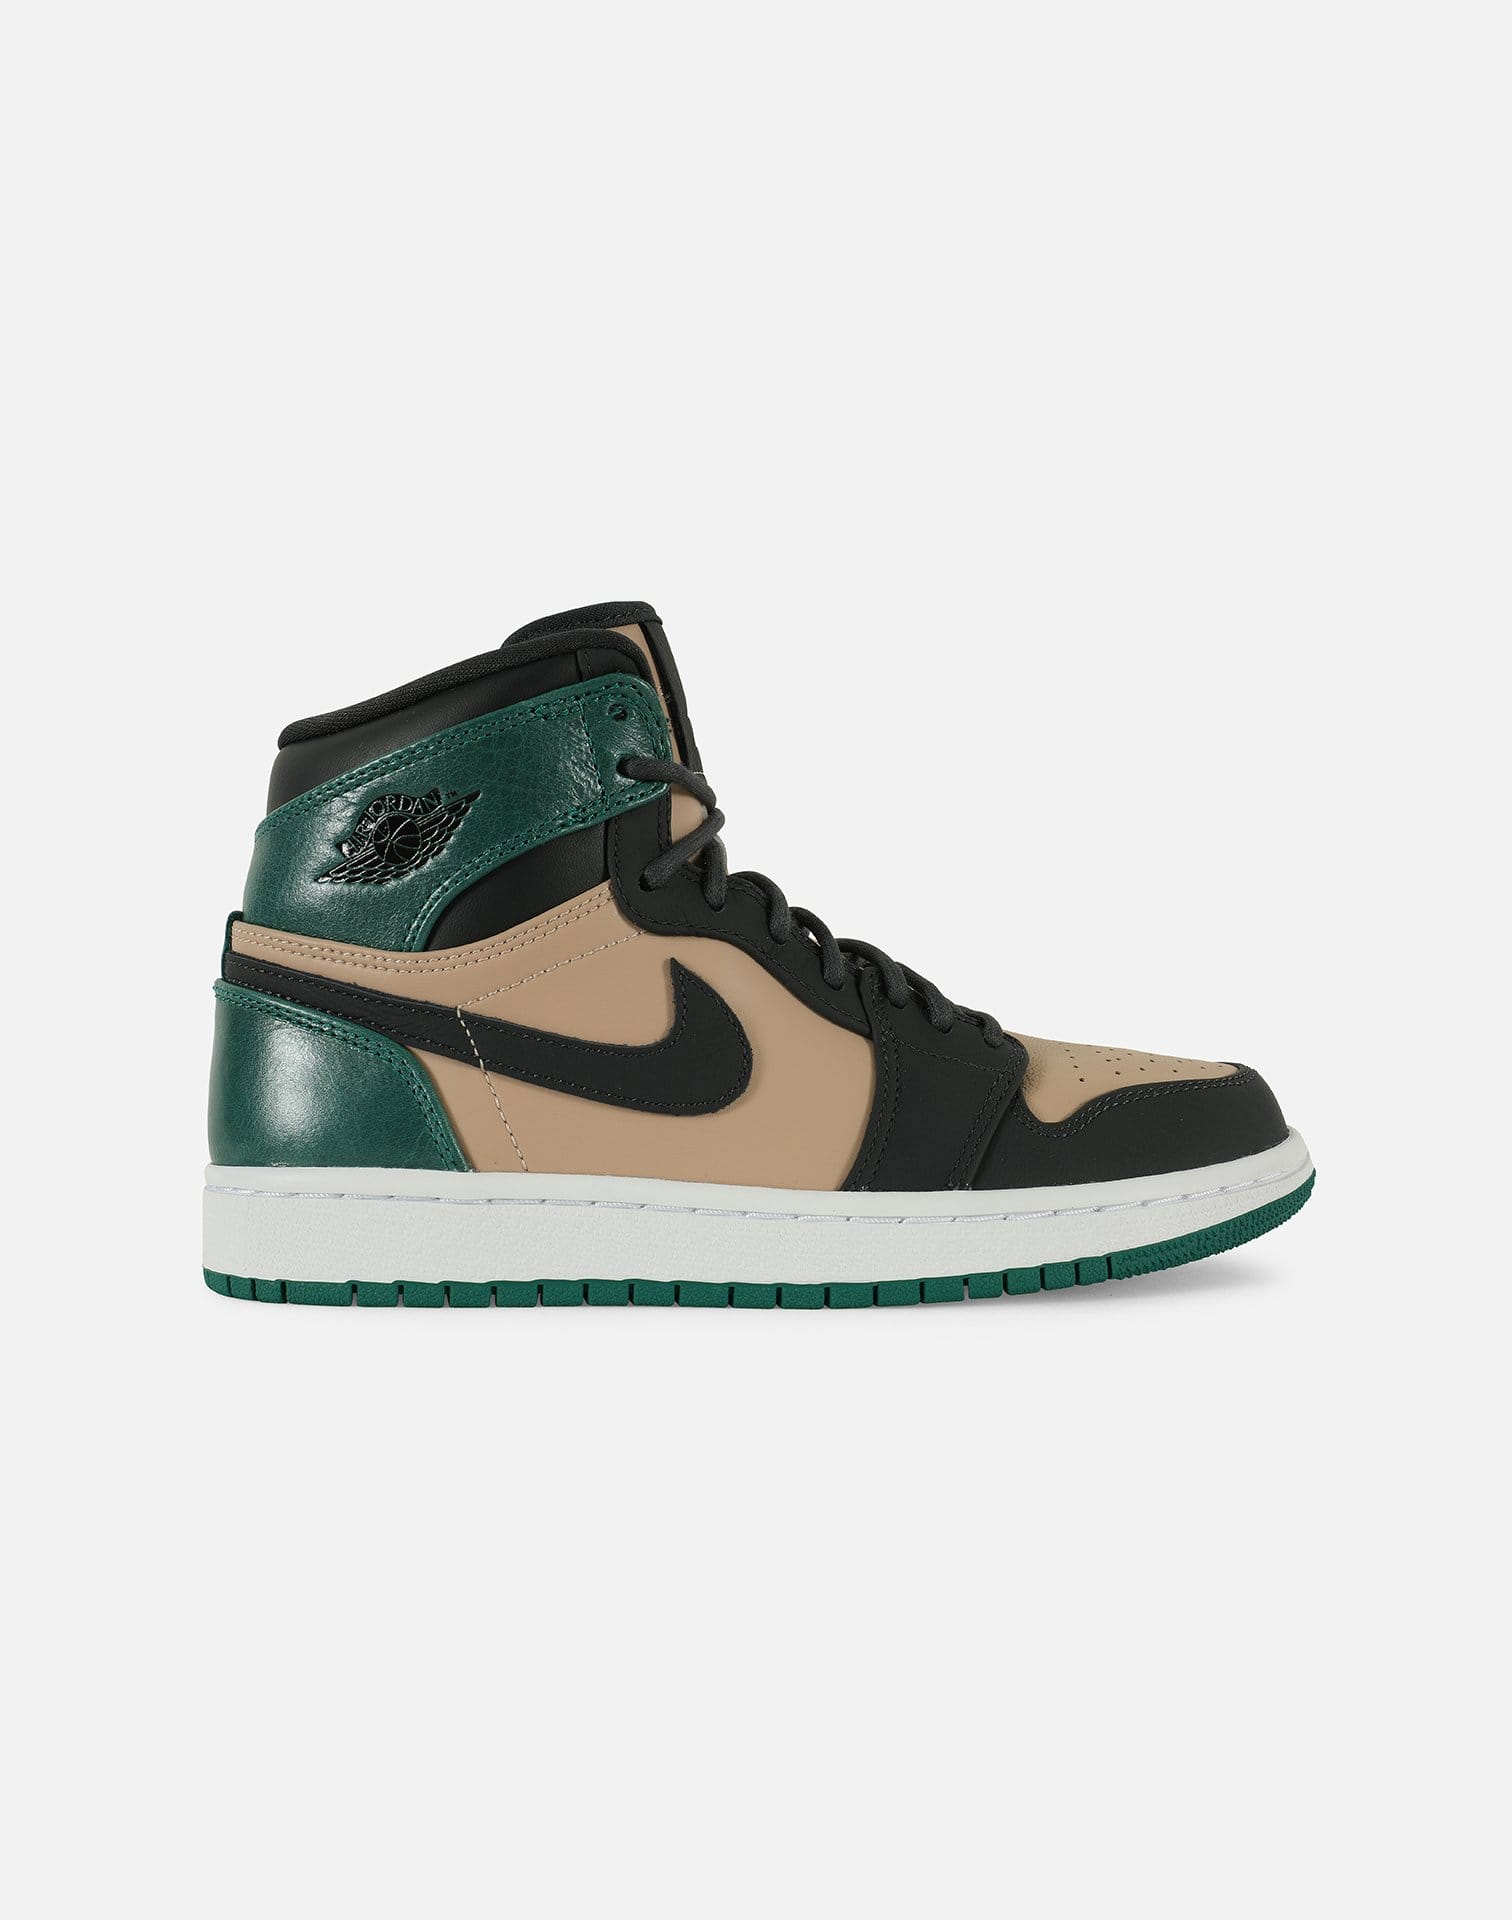 Jordan Women's Air Jordan Retro 1 High Premium